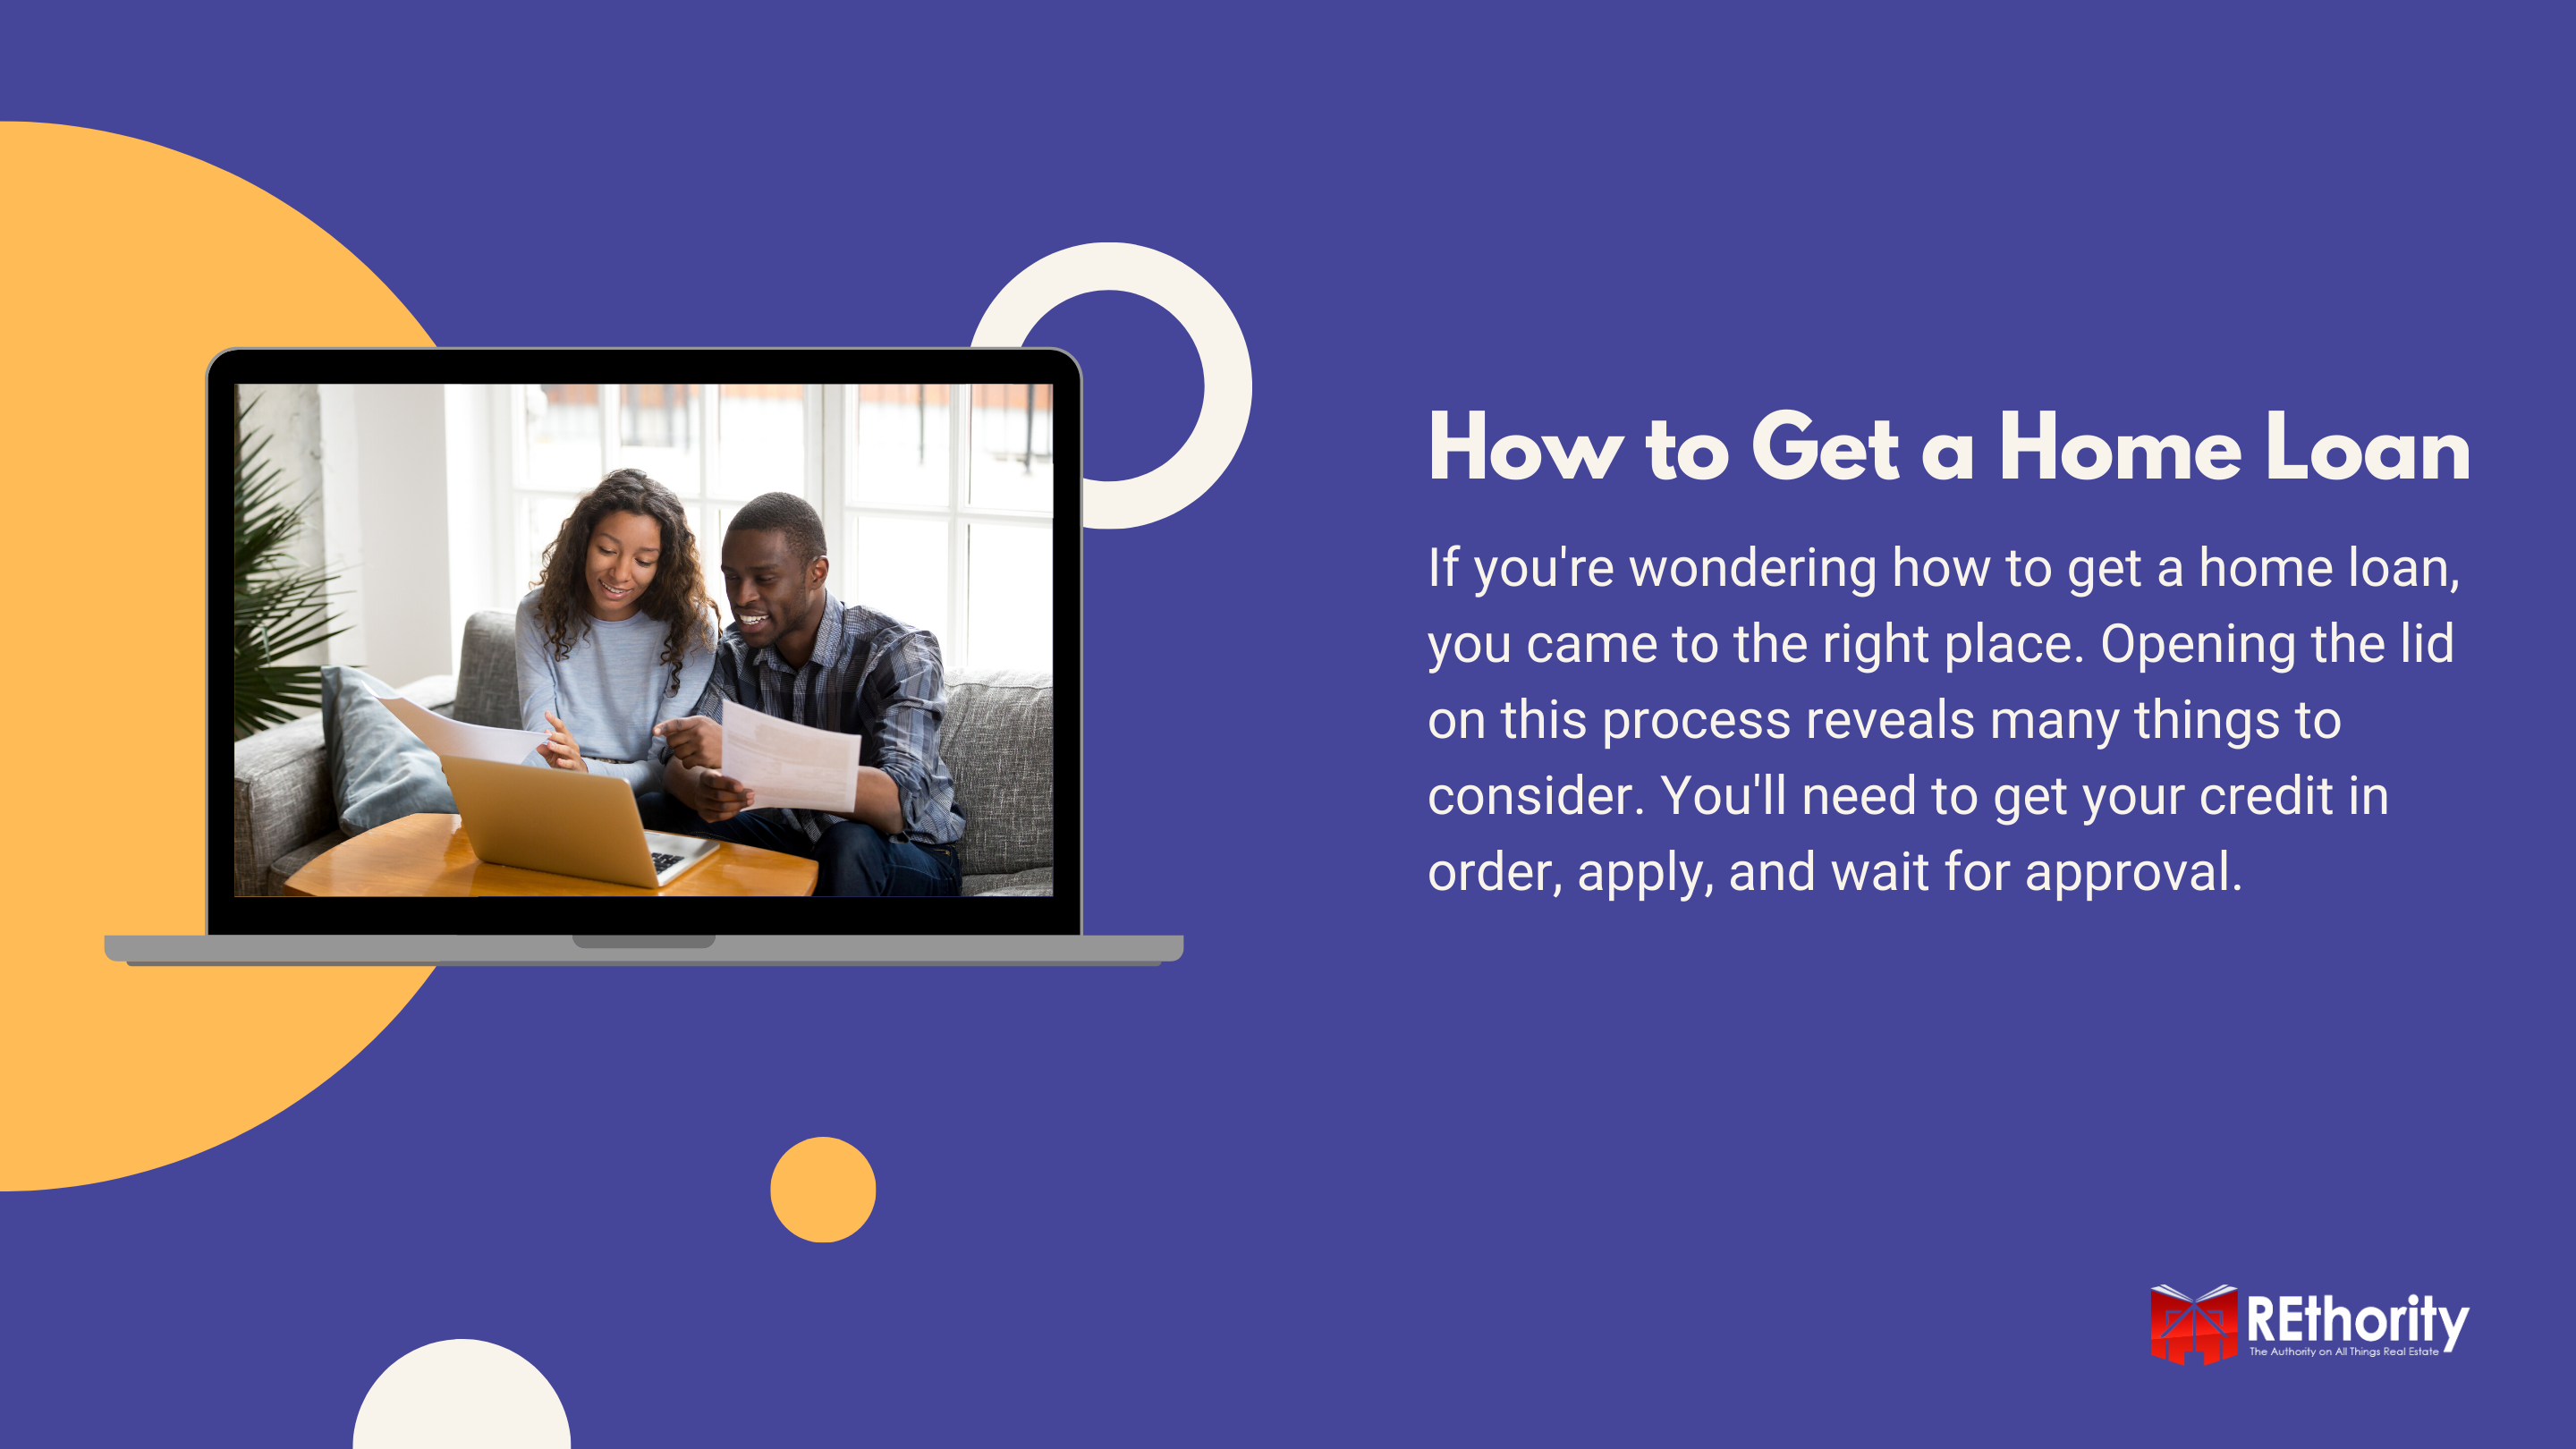 How to Get a Home Loan graphic featuring two buyers looking at documents and a brief explanation about the article contents